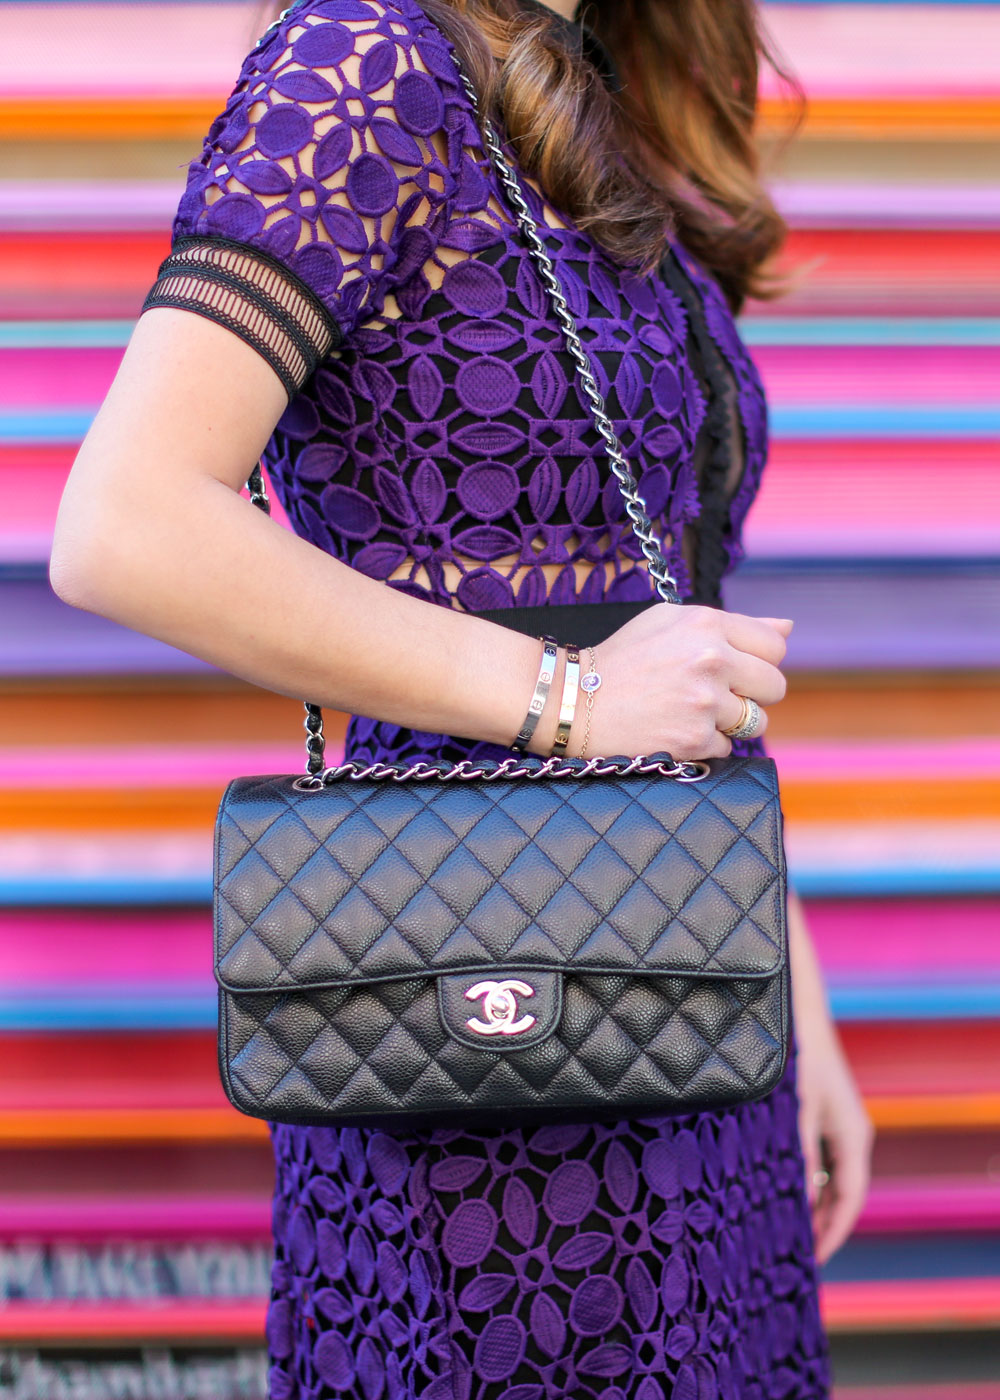 Chanel Quilted Medium Flap Bag